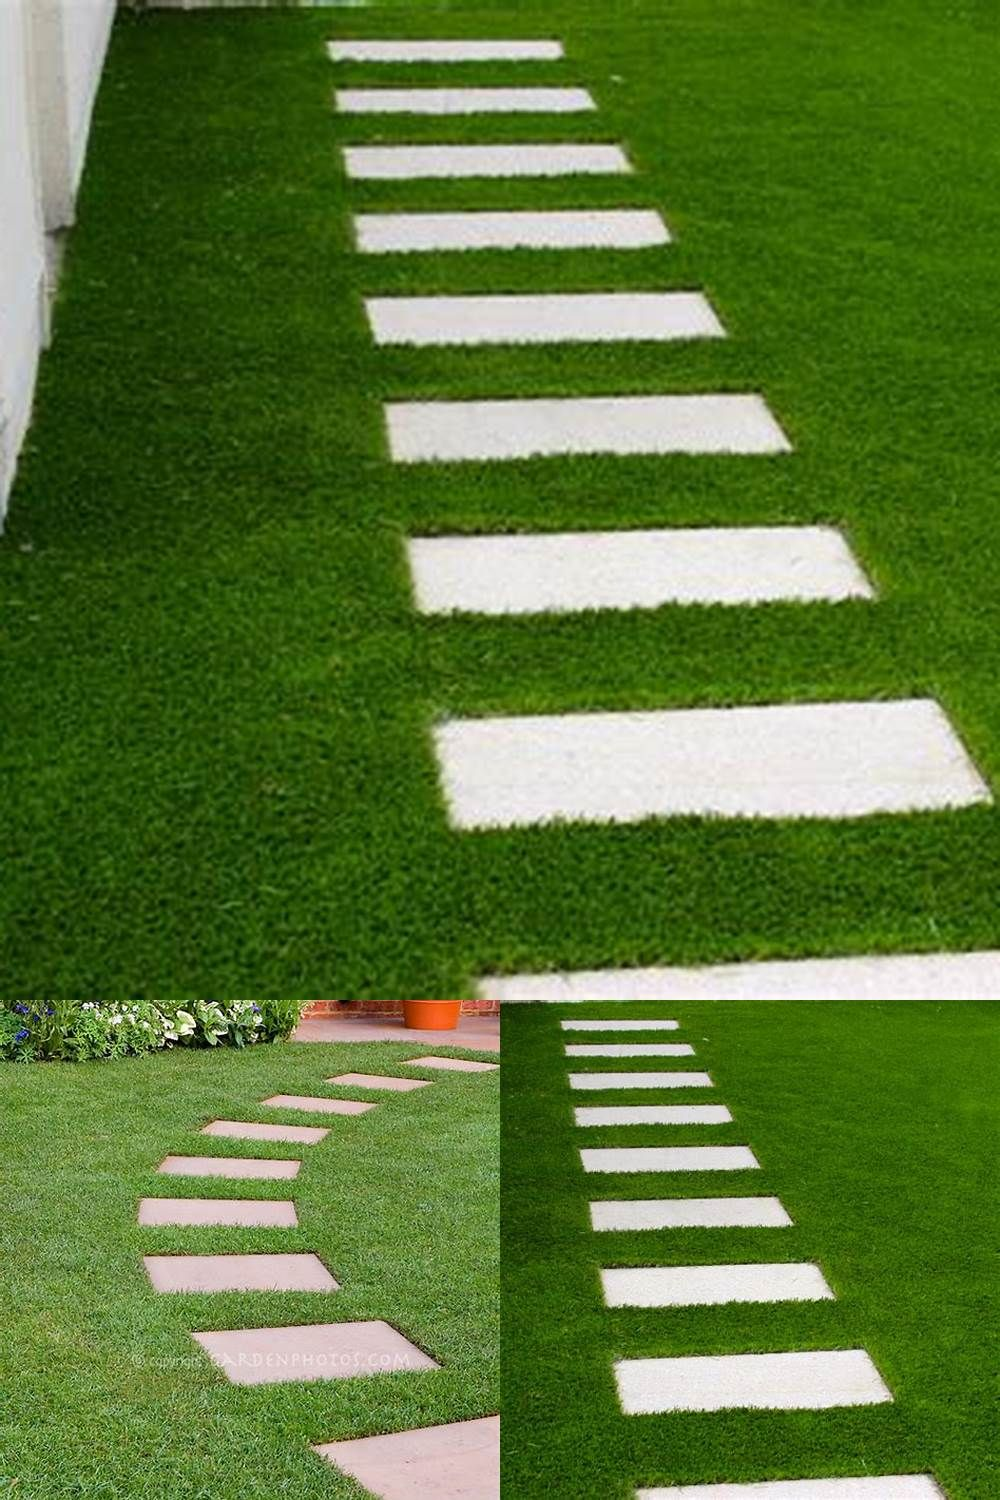 60 Best Ideas to Beautify Your Stepping Stones | Stepping ... on Backyard Landscaping Companies Near Me id=61696